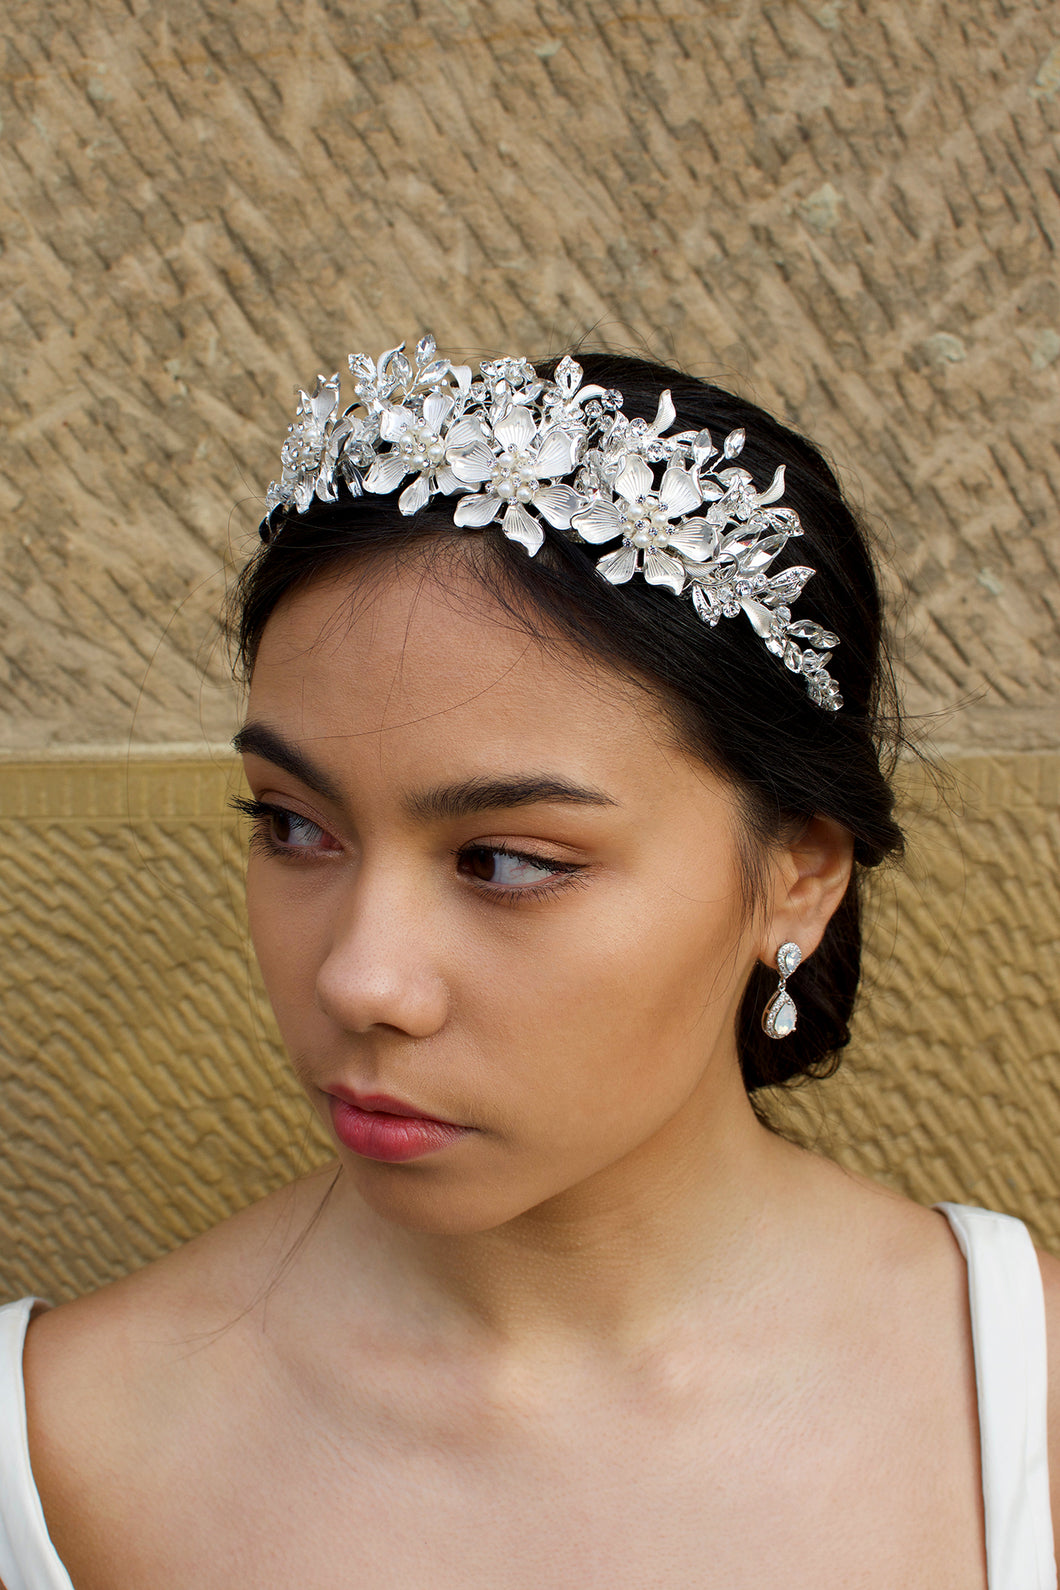 Soft Silver Handmade Tiara with leaves and pearl flowers on a dark hair model in front of an old sandstone wall